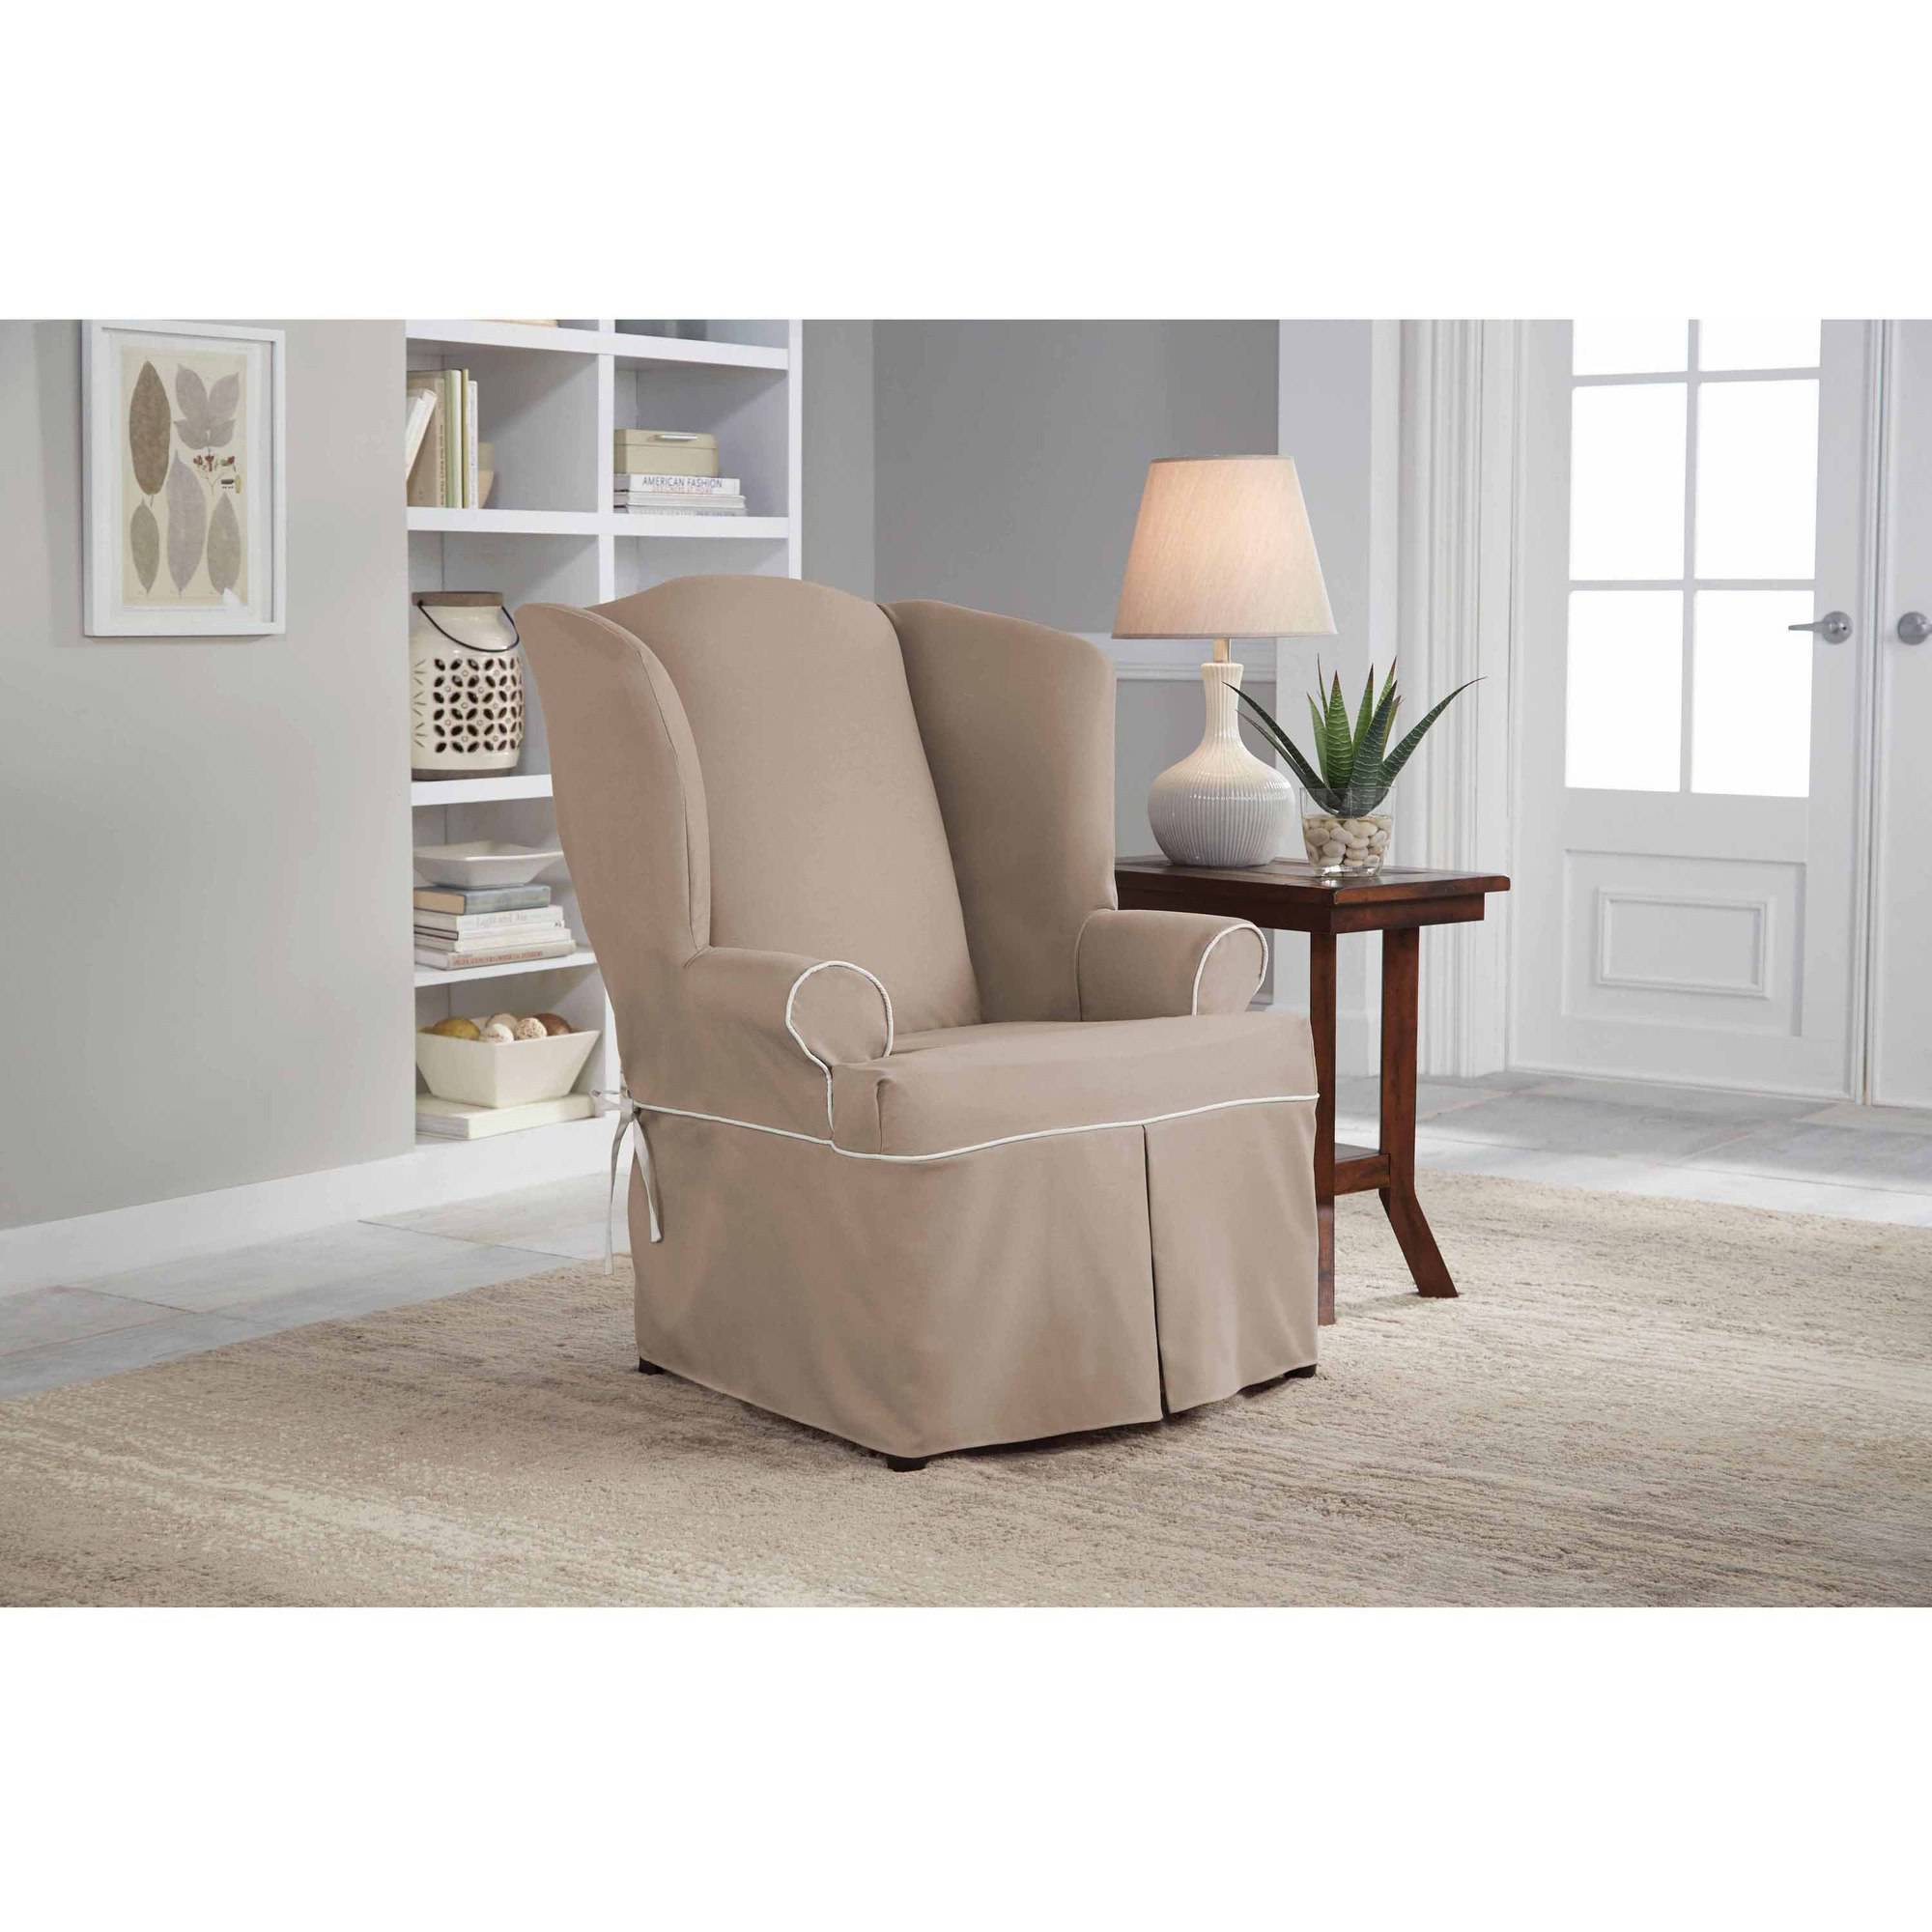 chair slip cover quartz folding slipcovers for sofas with cushions separate finest serta